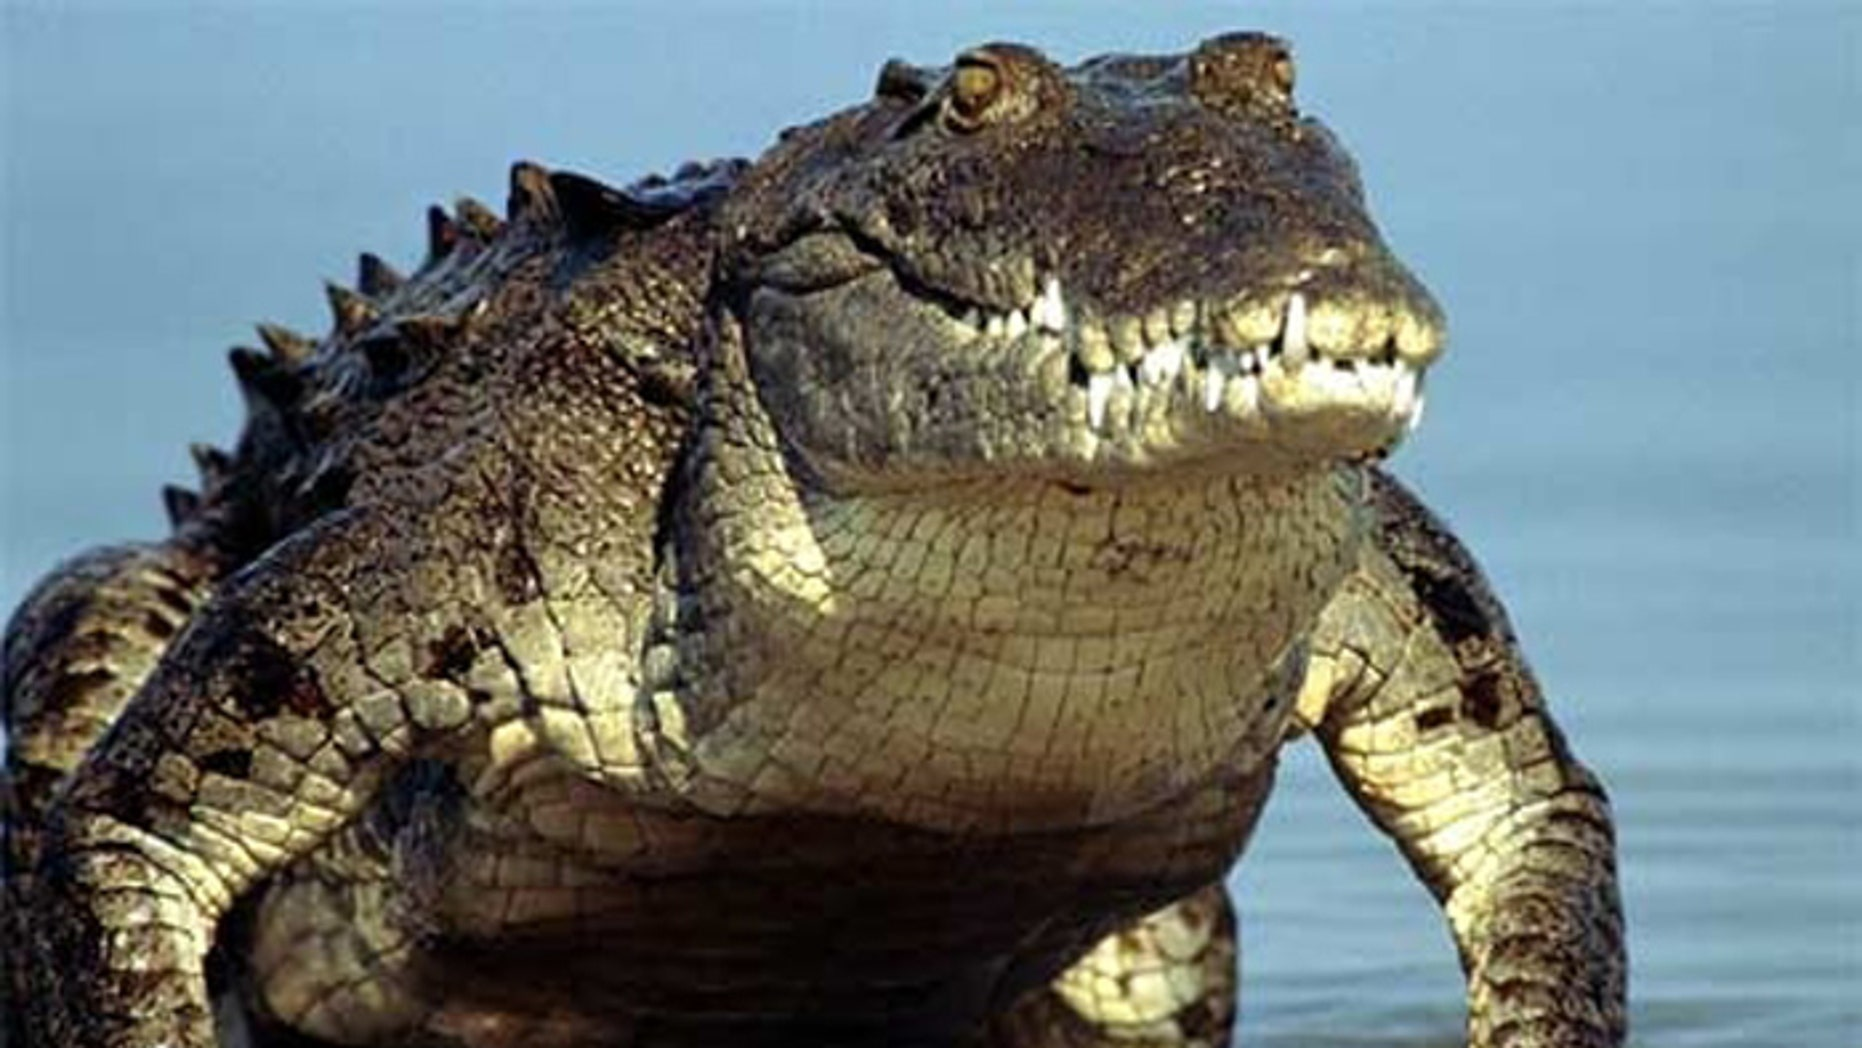 Florida will train you to hunt these critters.